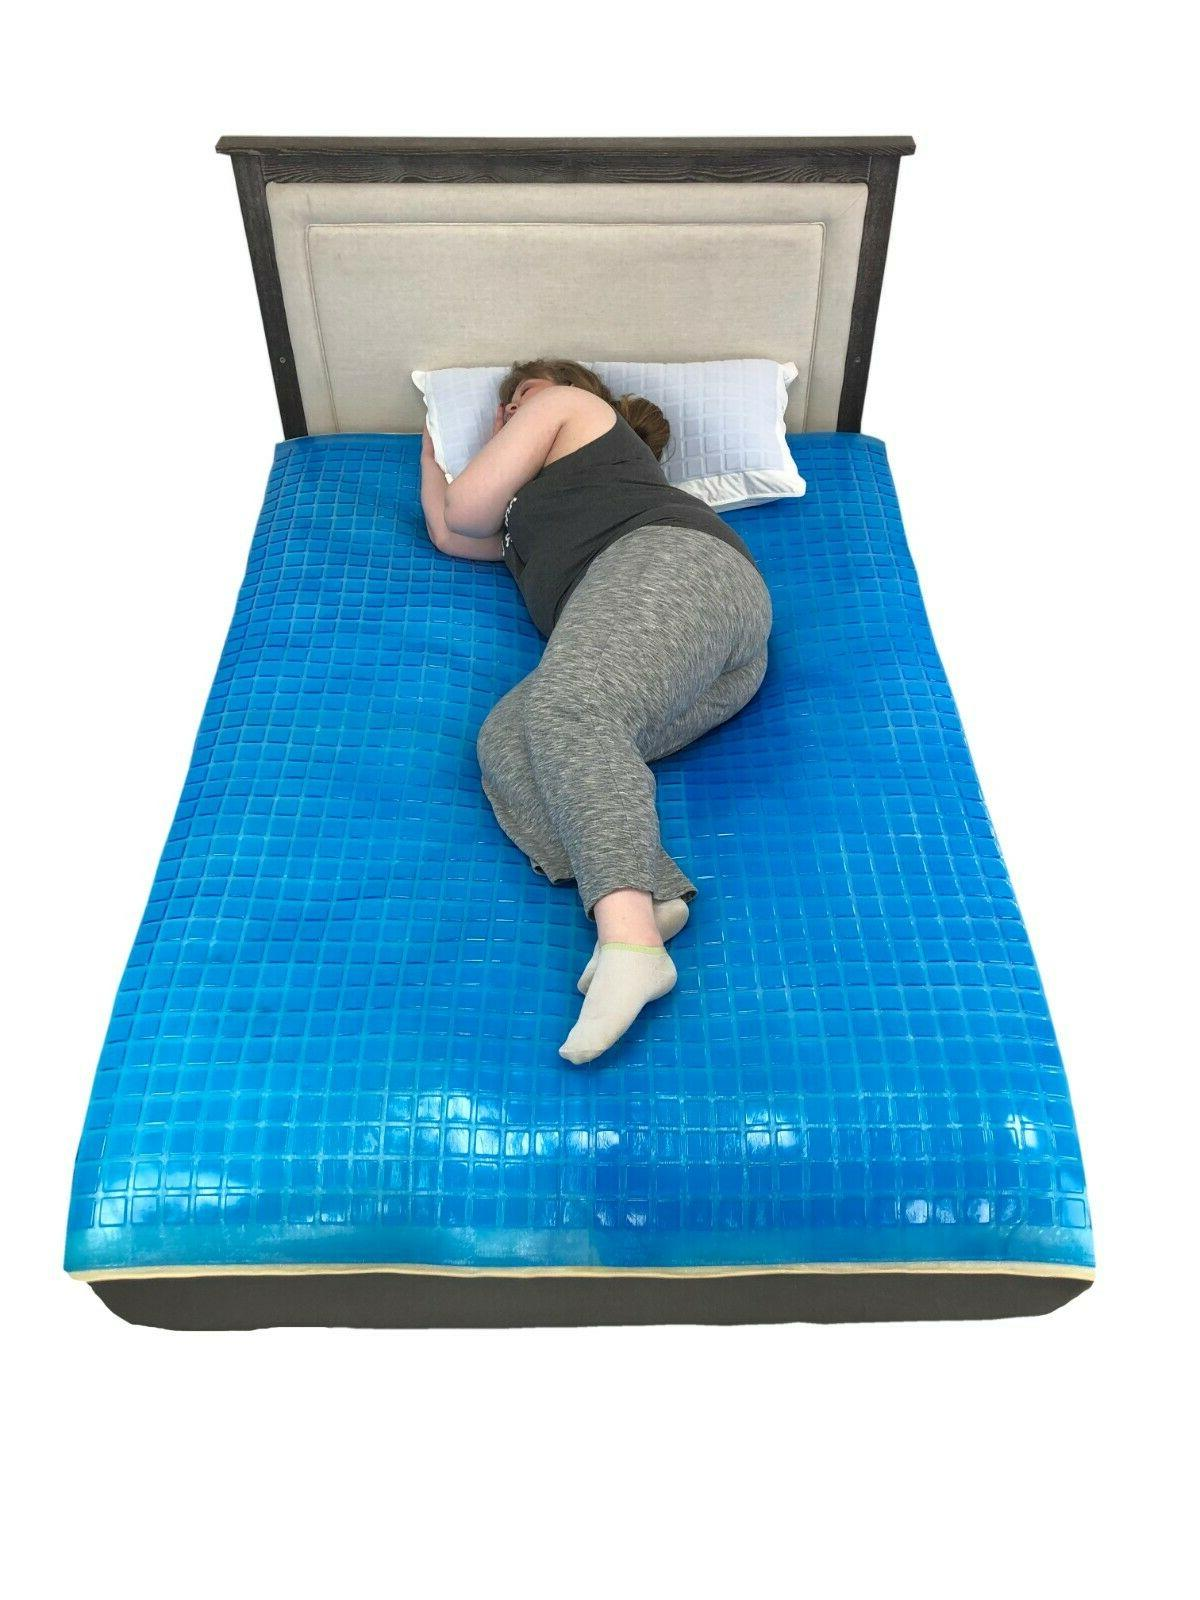 Cooling Mattress - Bed Mattress Pad to Stay